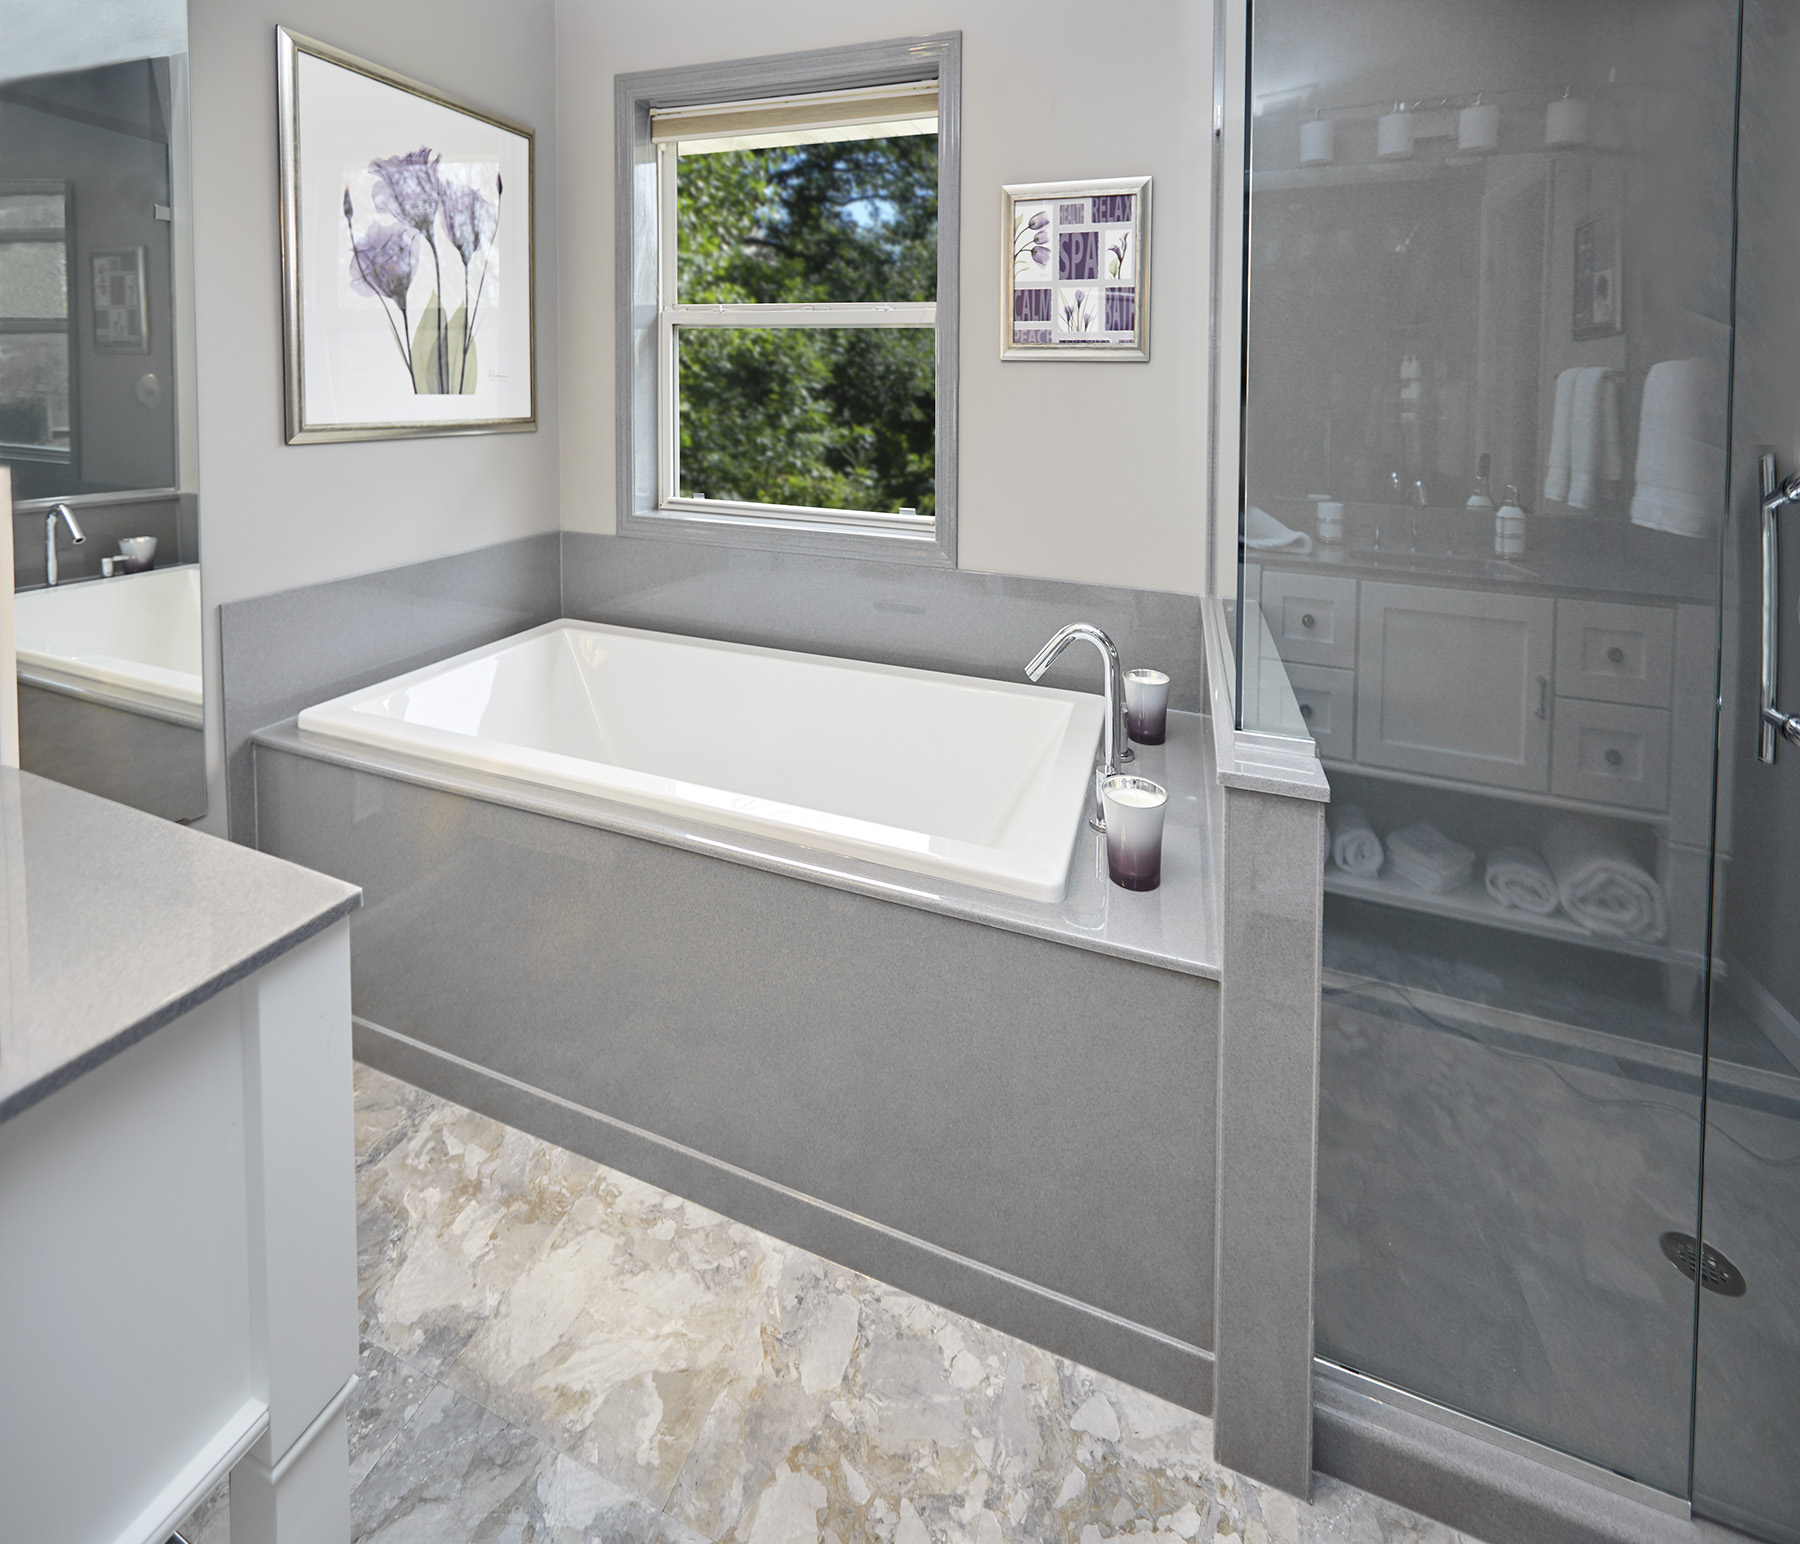 Job Completed For Master Bathroom Renovation In Brooklyn